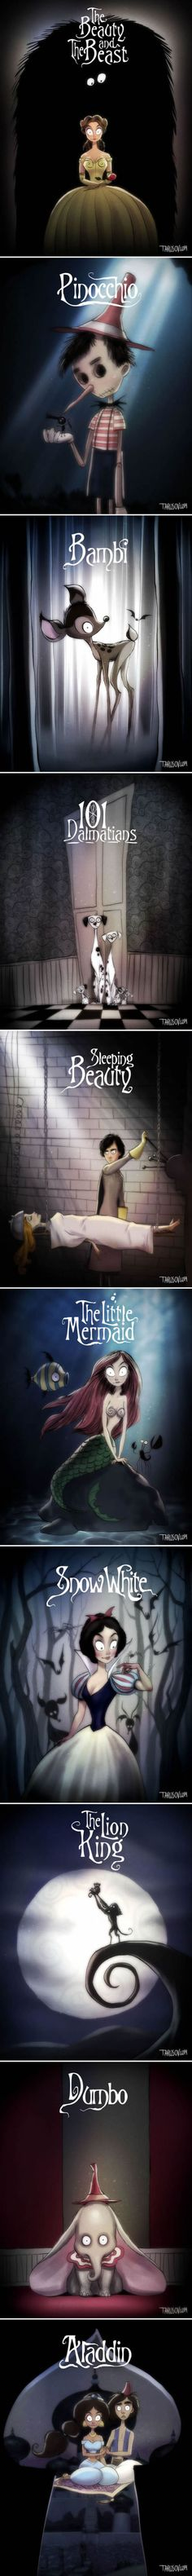 DesertRose,;,If Tim Burton Directed Disney Movies (By Andrew Tarusov),;,